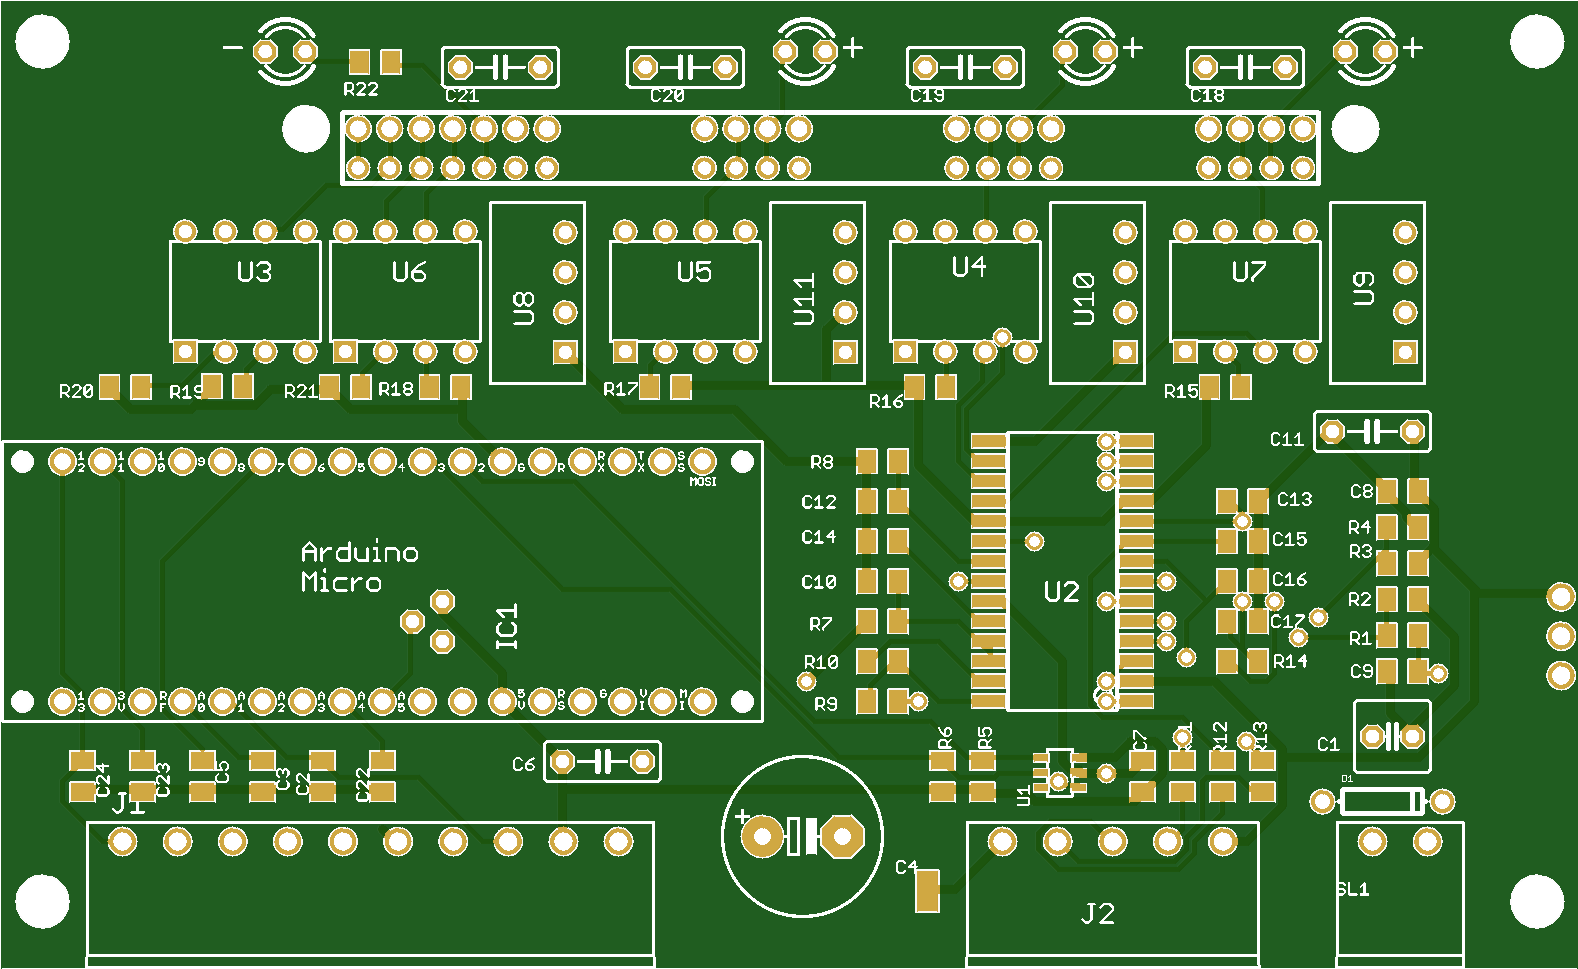 Brushless Dc Motor Controller For Igbt Intelligent Modules Share Wiring Diagram This Is A Board Designed To Control Powerex Mitsubishi